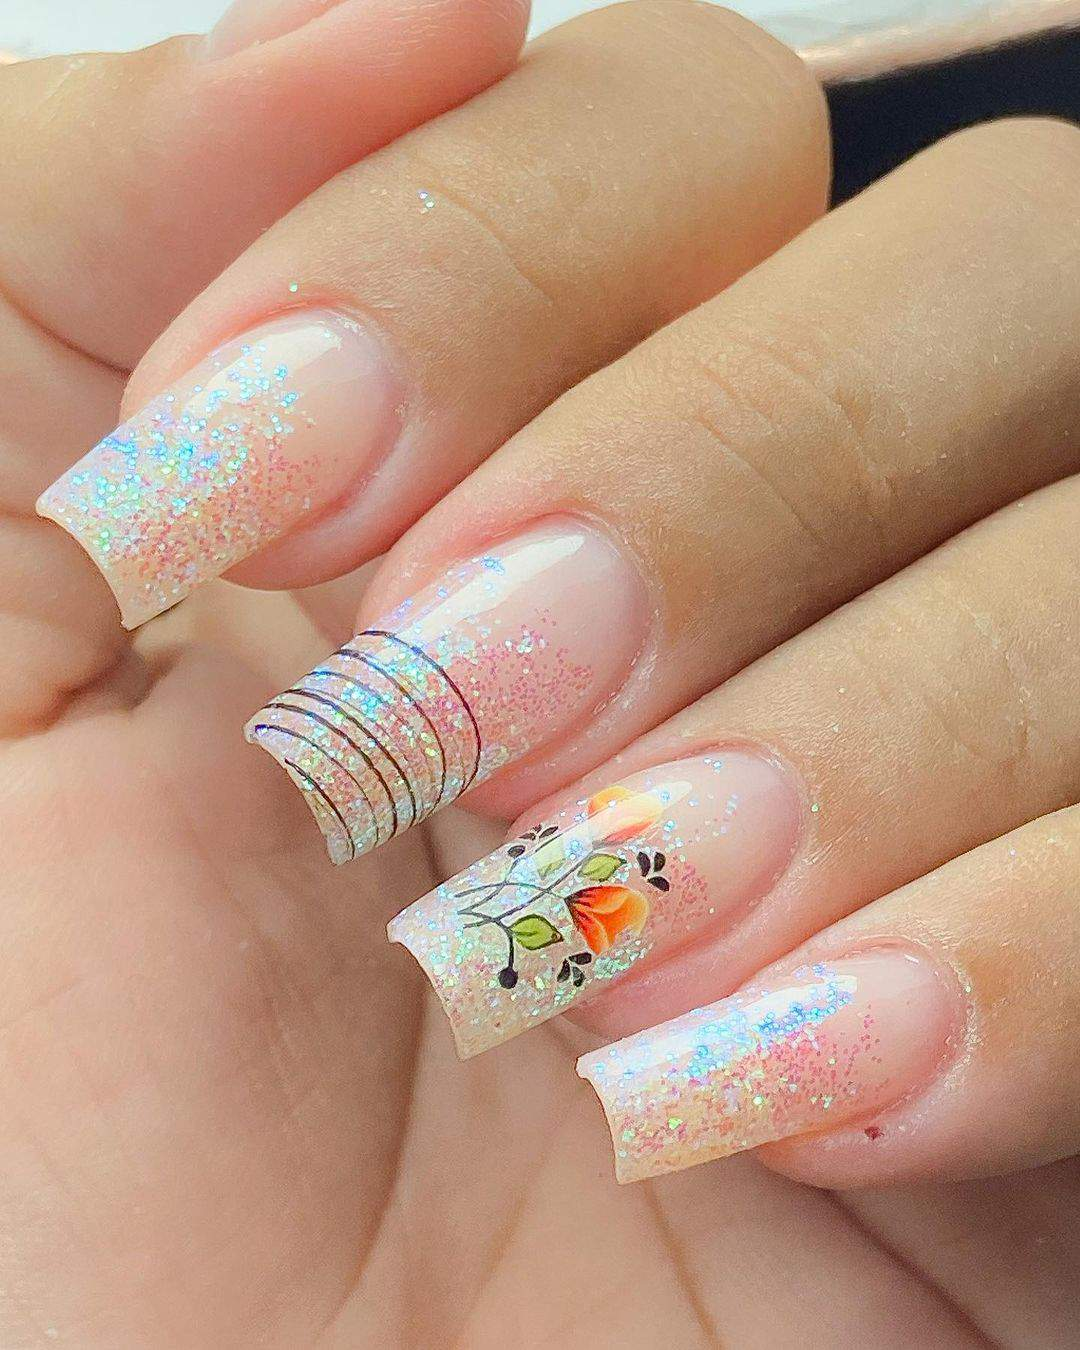 The 100+ Best Nail Designs Trends And Ideas In 2021 images 84